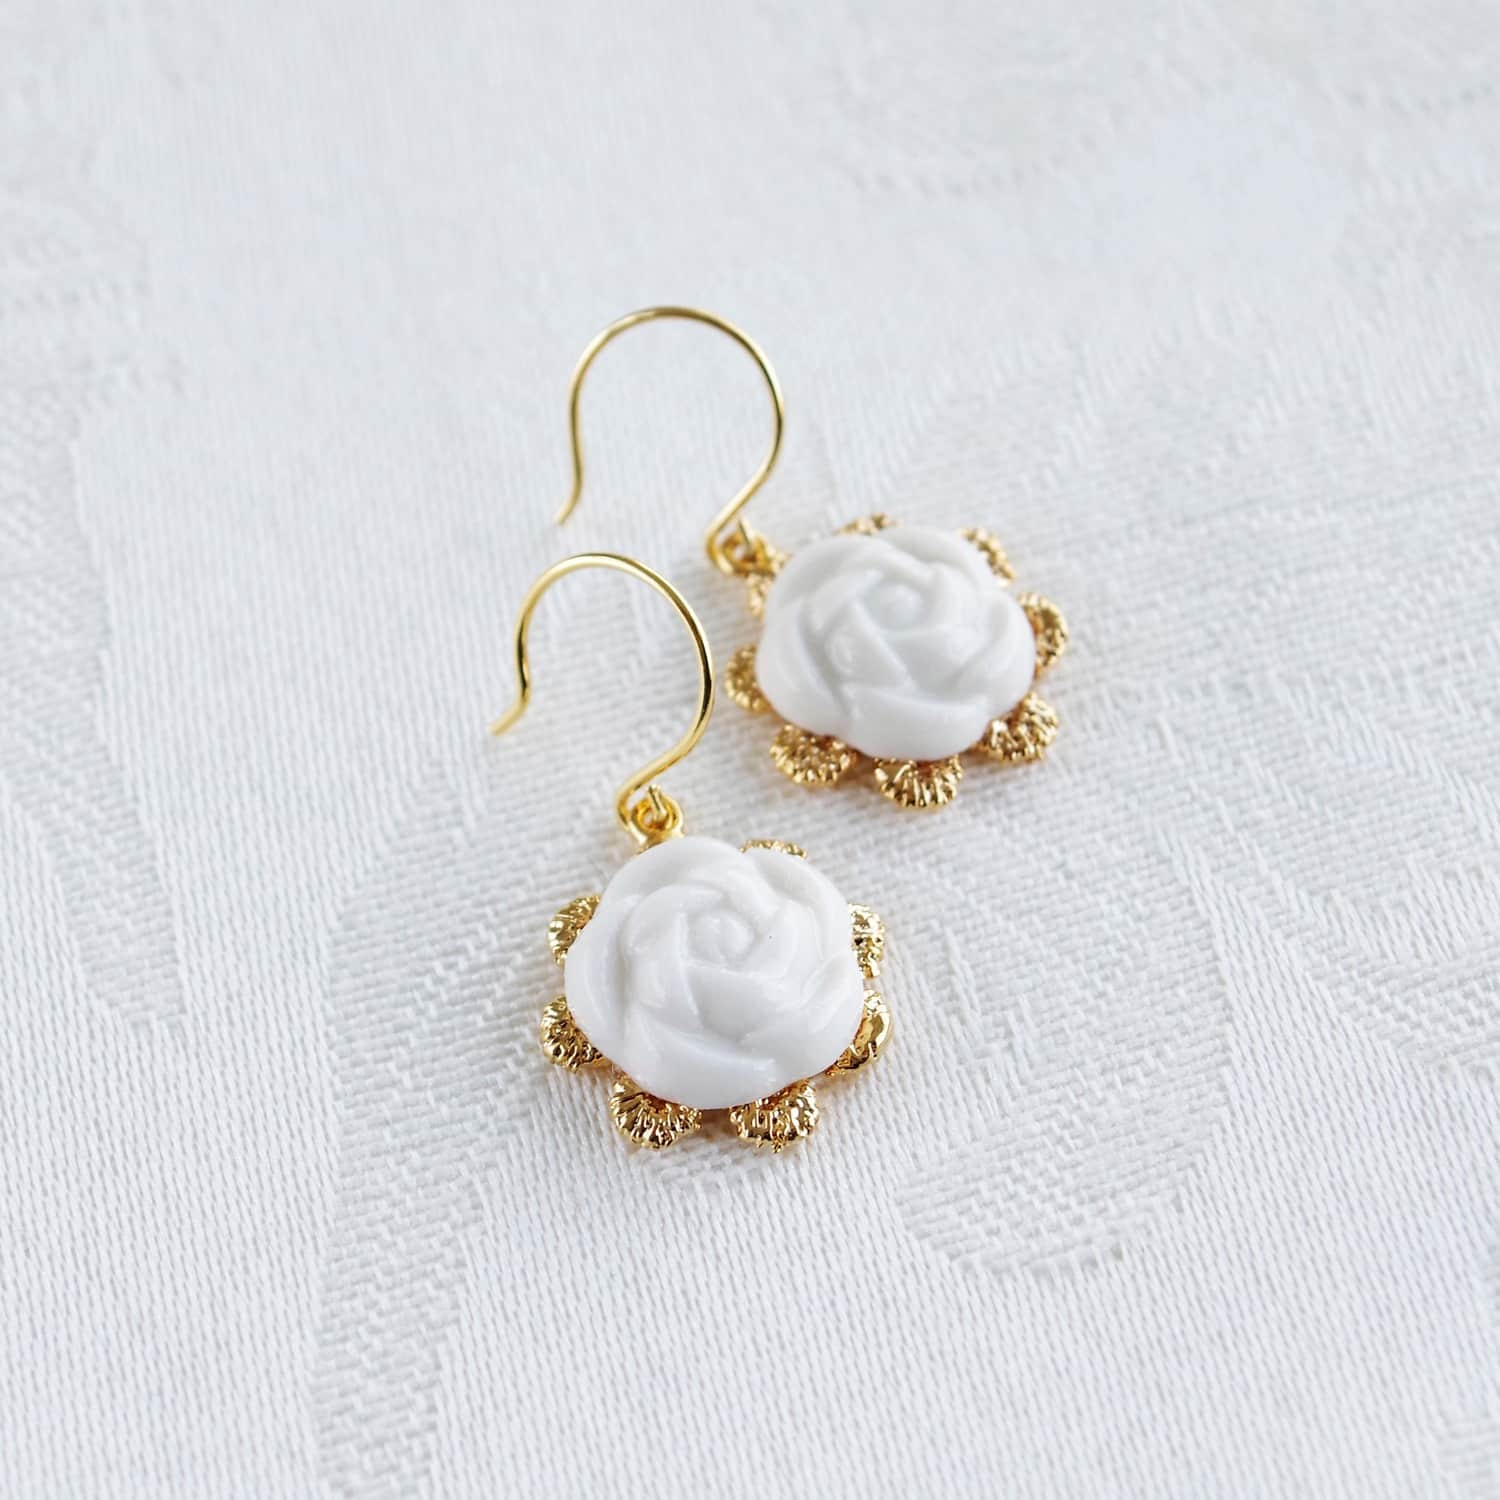 5be5fd7a385f4 Everyday Porcelain Camellia Flower Charm Earrings by POPORCELAIN